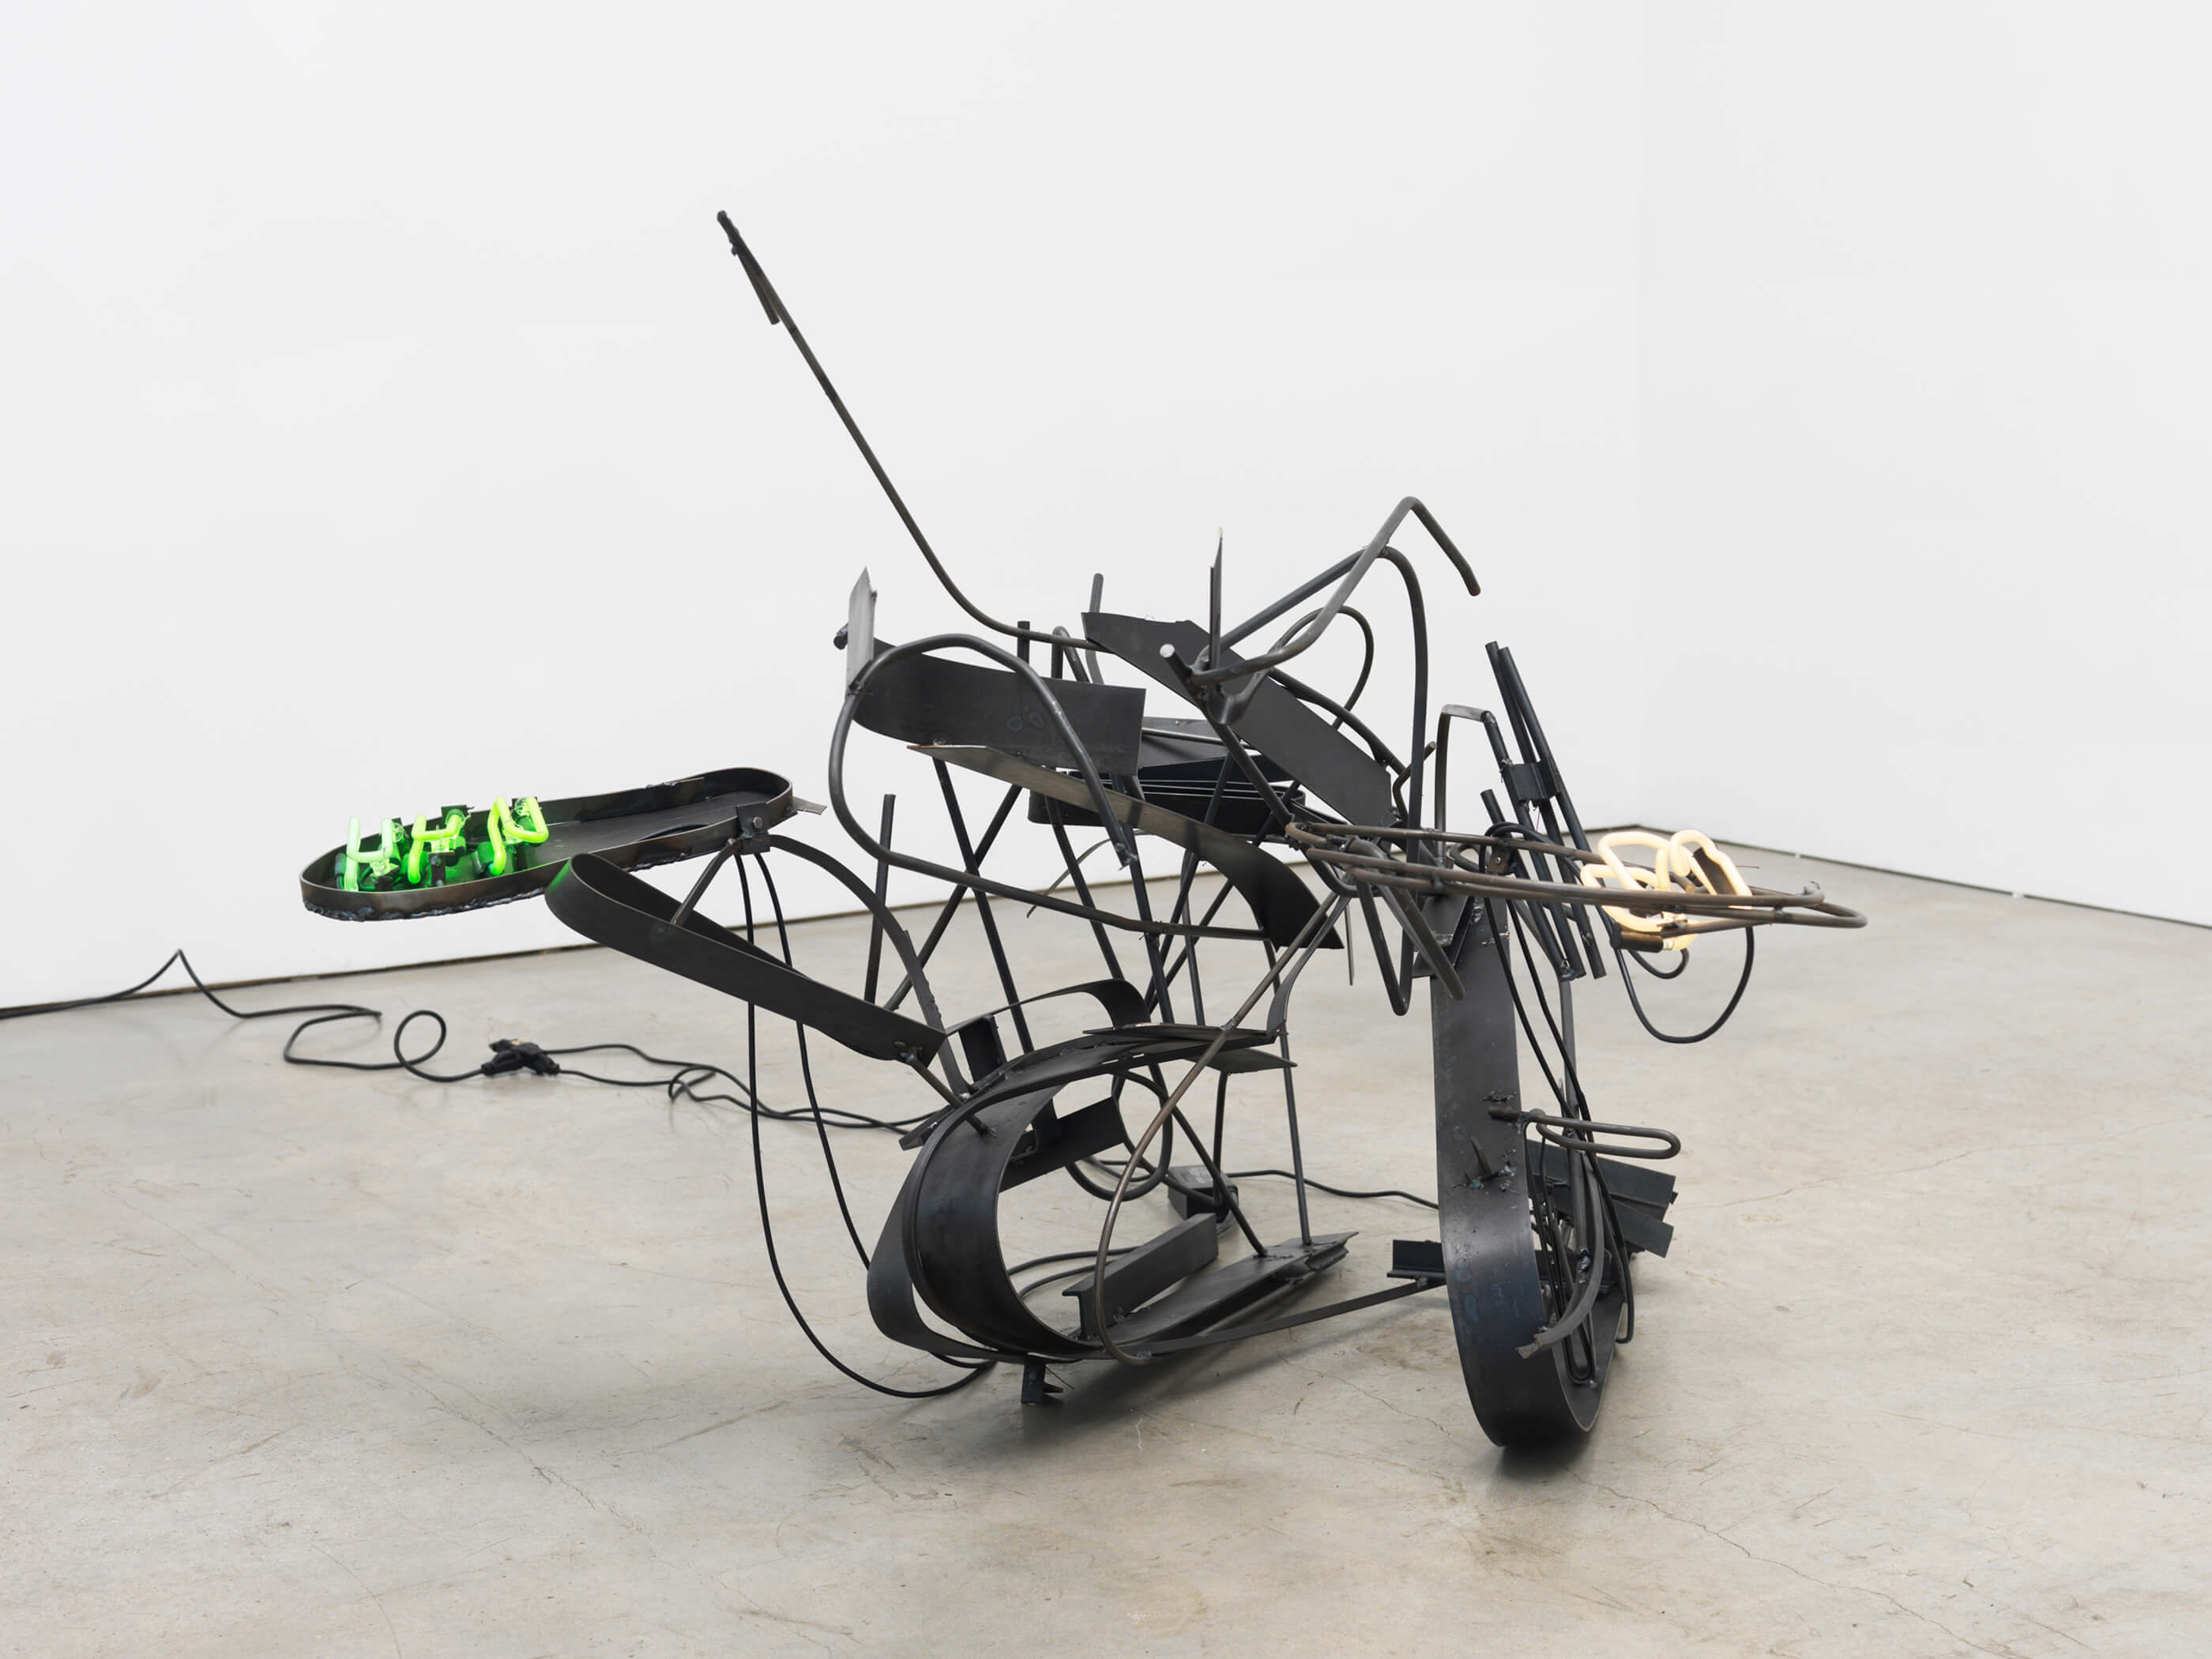 Hors d'oeuvres, Steel, neon, transformers, GTO cable, electric cable, 2 x 5 x 4.5 feet, 2015